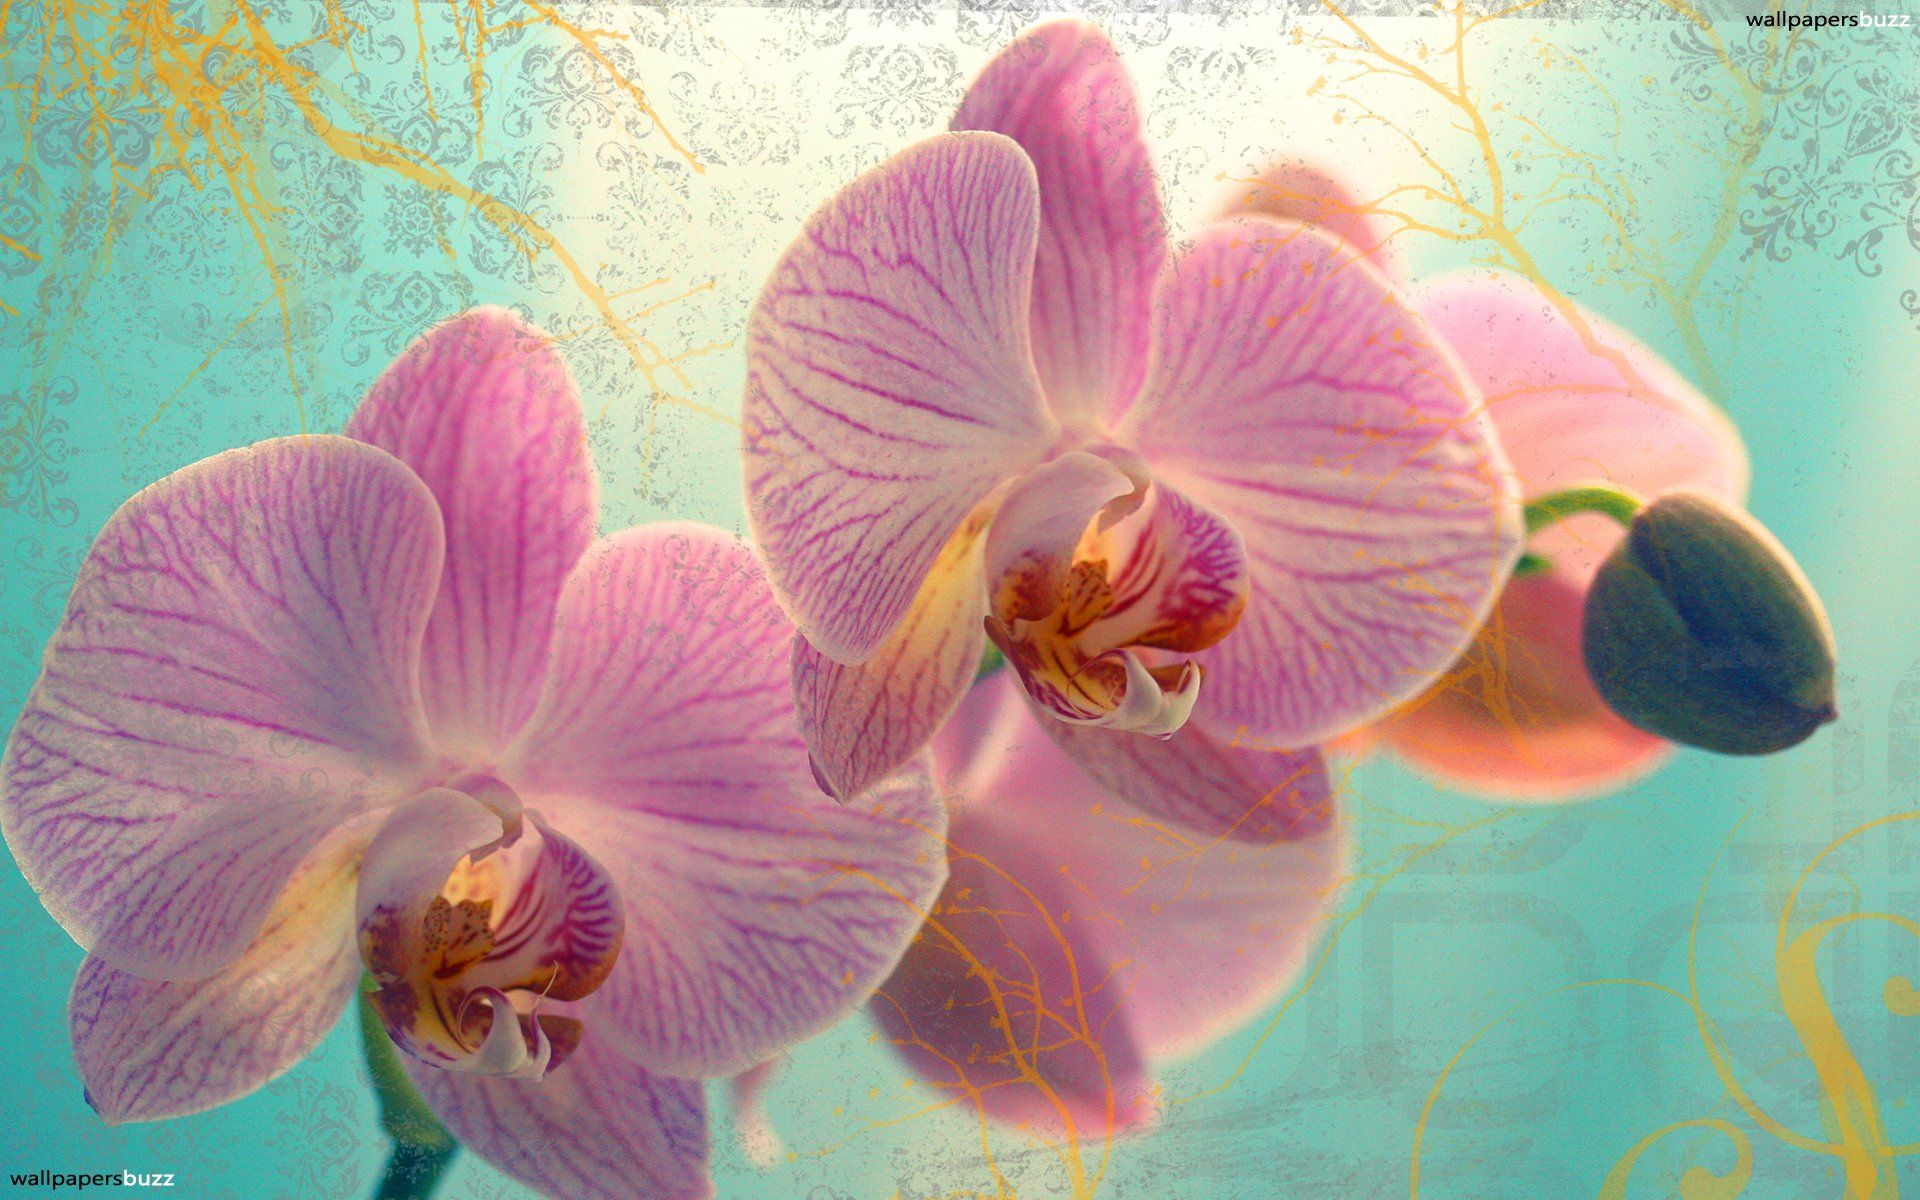 Best flowers android wallpapers hd images on pinterest r